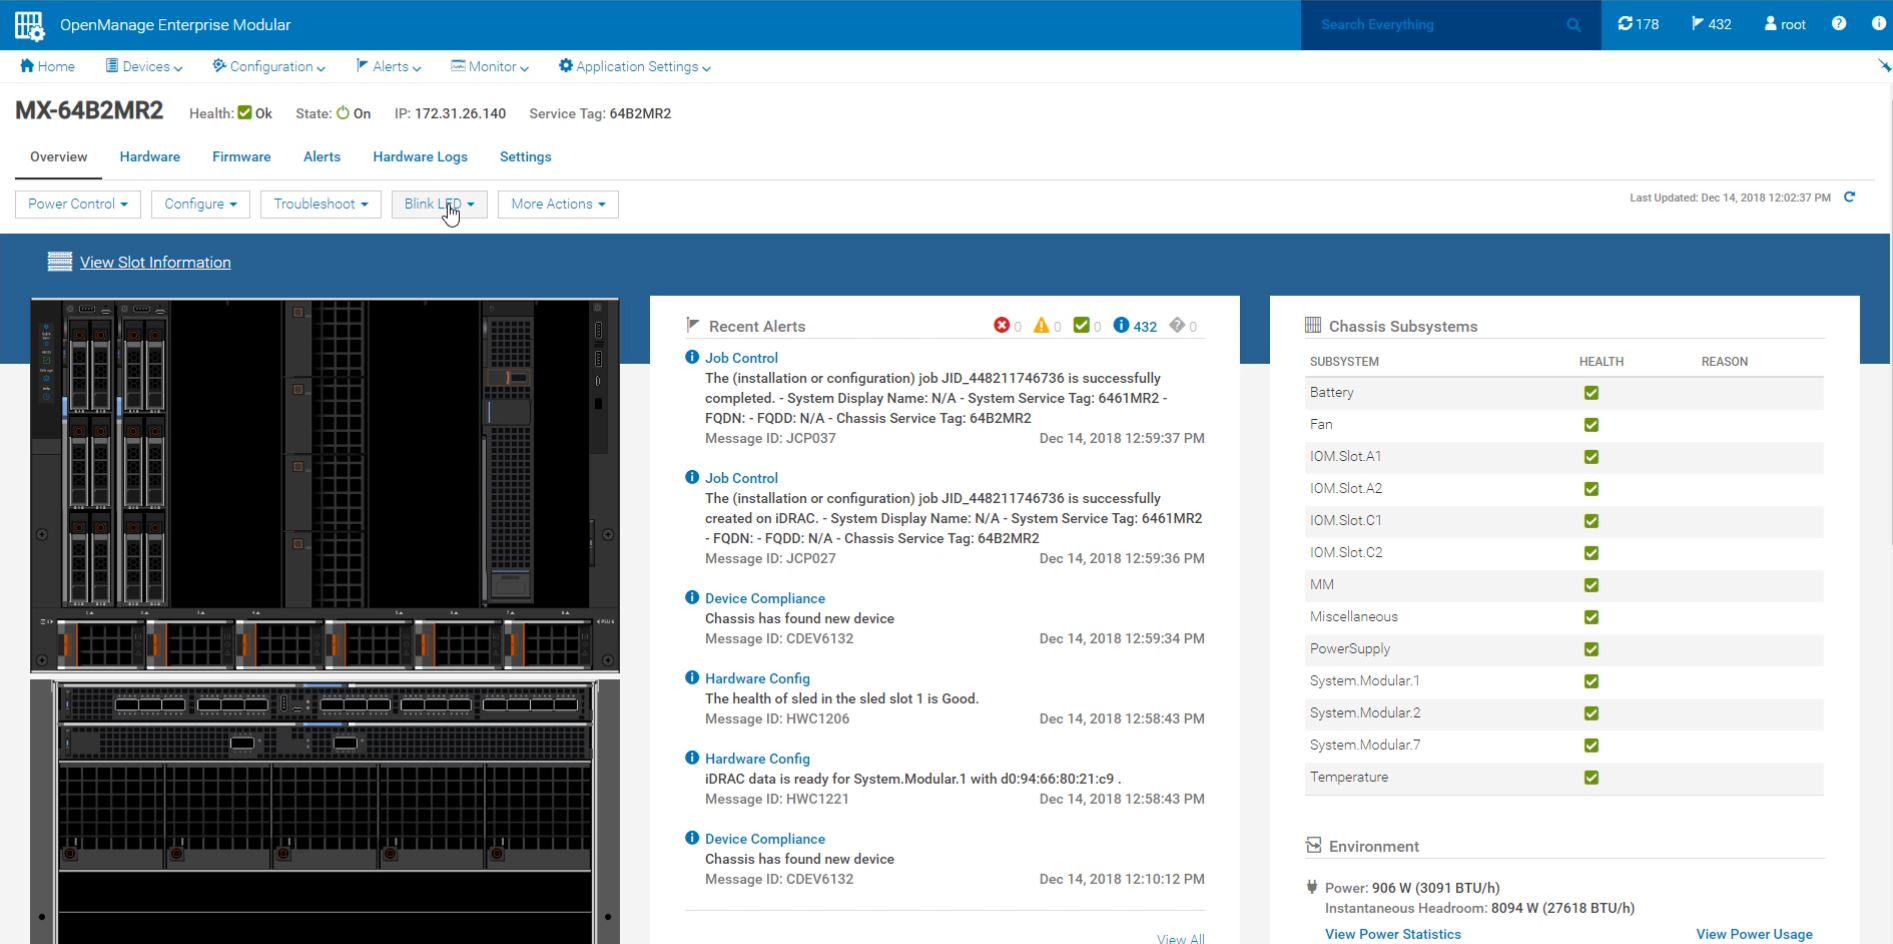 Dell EMC PowerEdge MX Monitor Chassis Management Dashboard